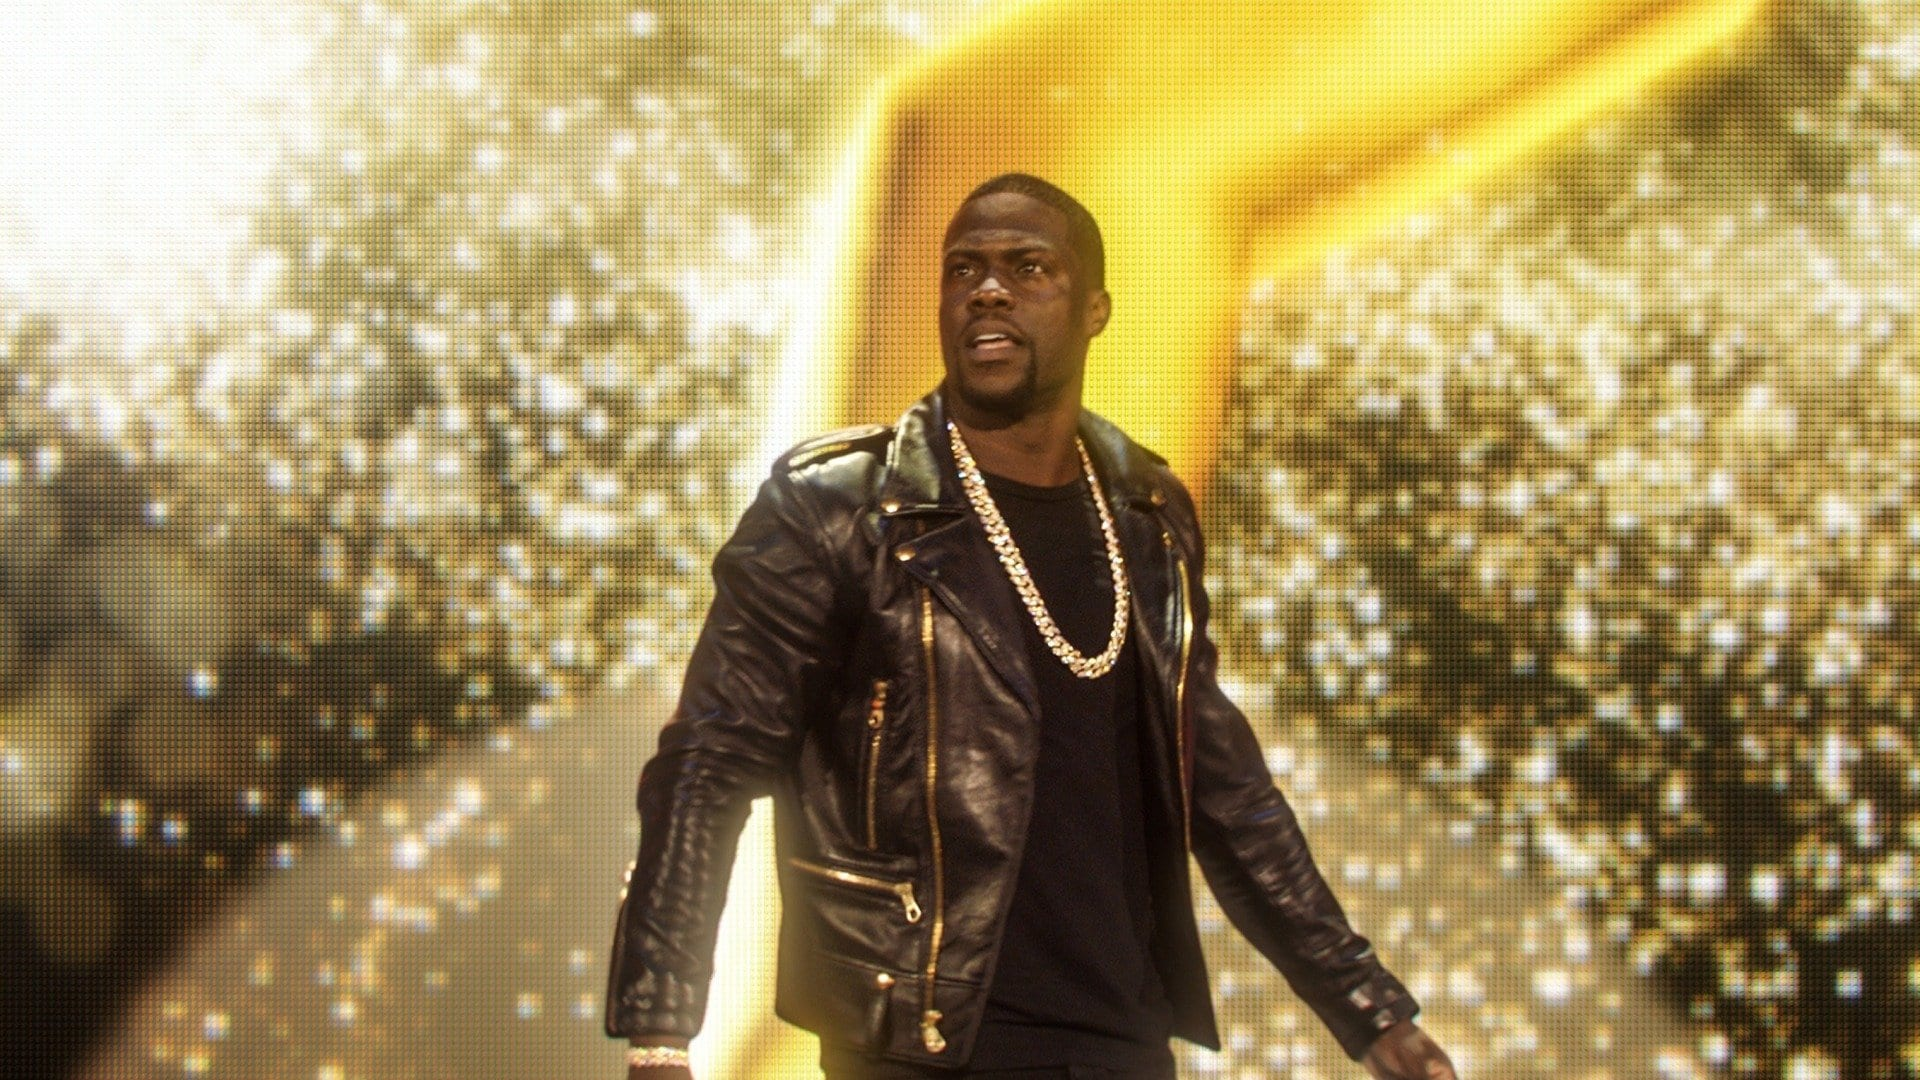 Kevin Hart: What Now? All Access Uncensored